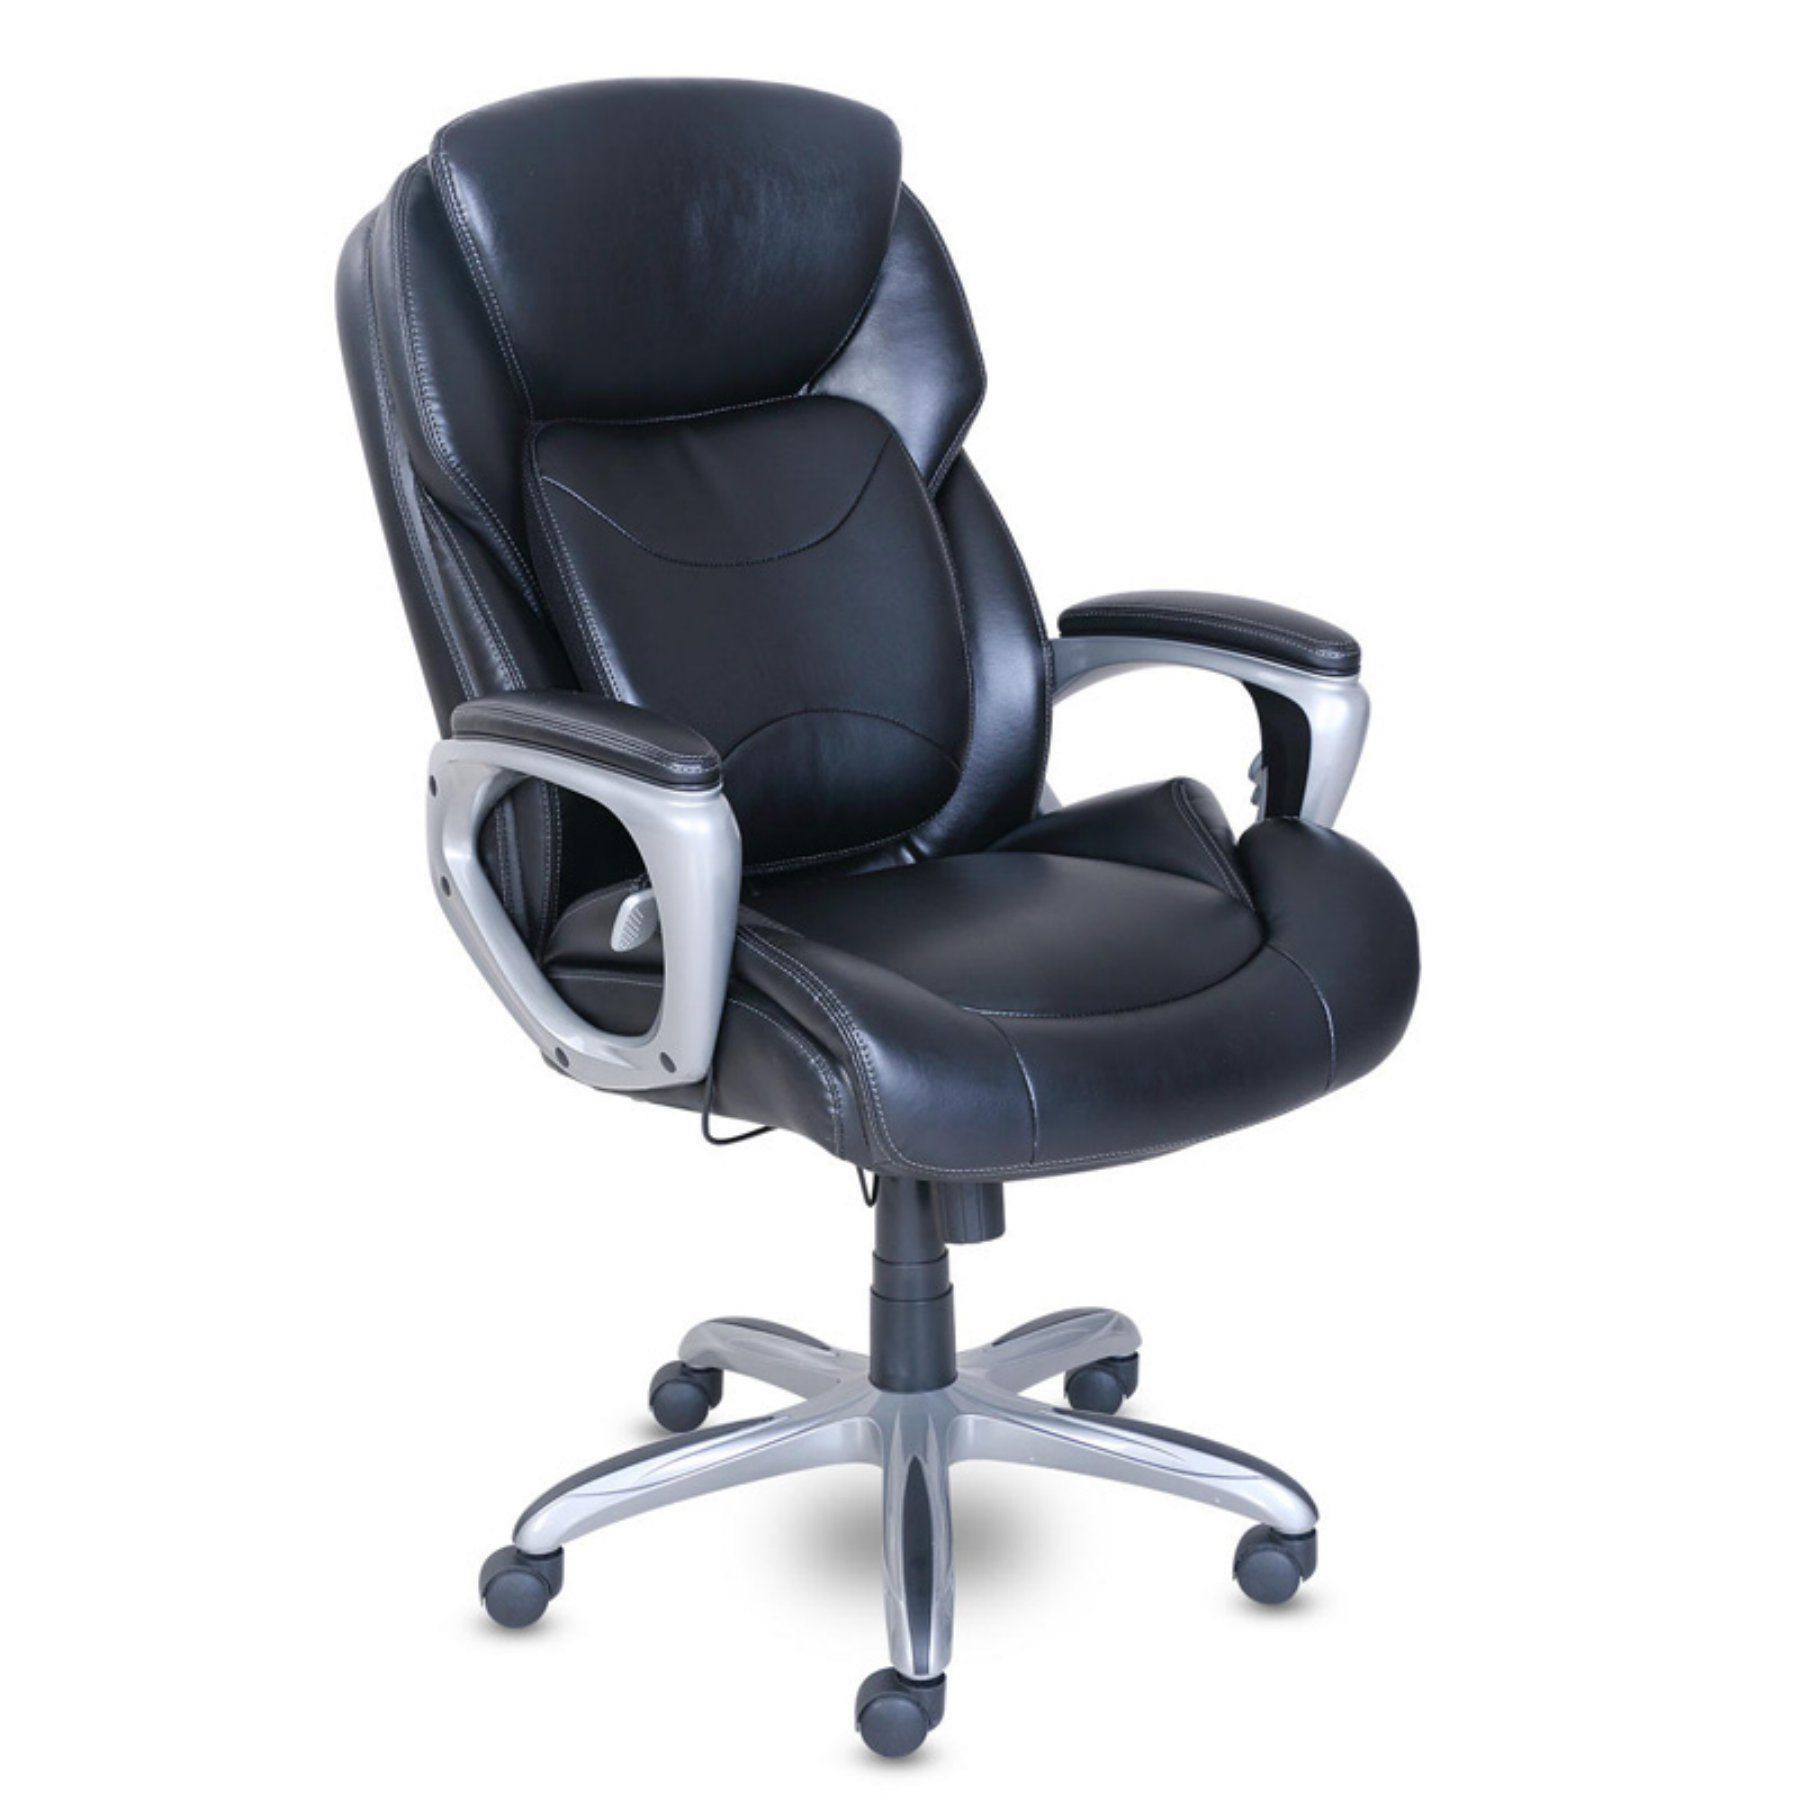 Serta My Fit Executive Office Chair with 360 Motion Support - 48096